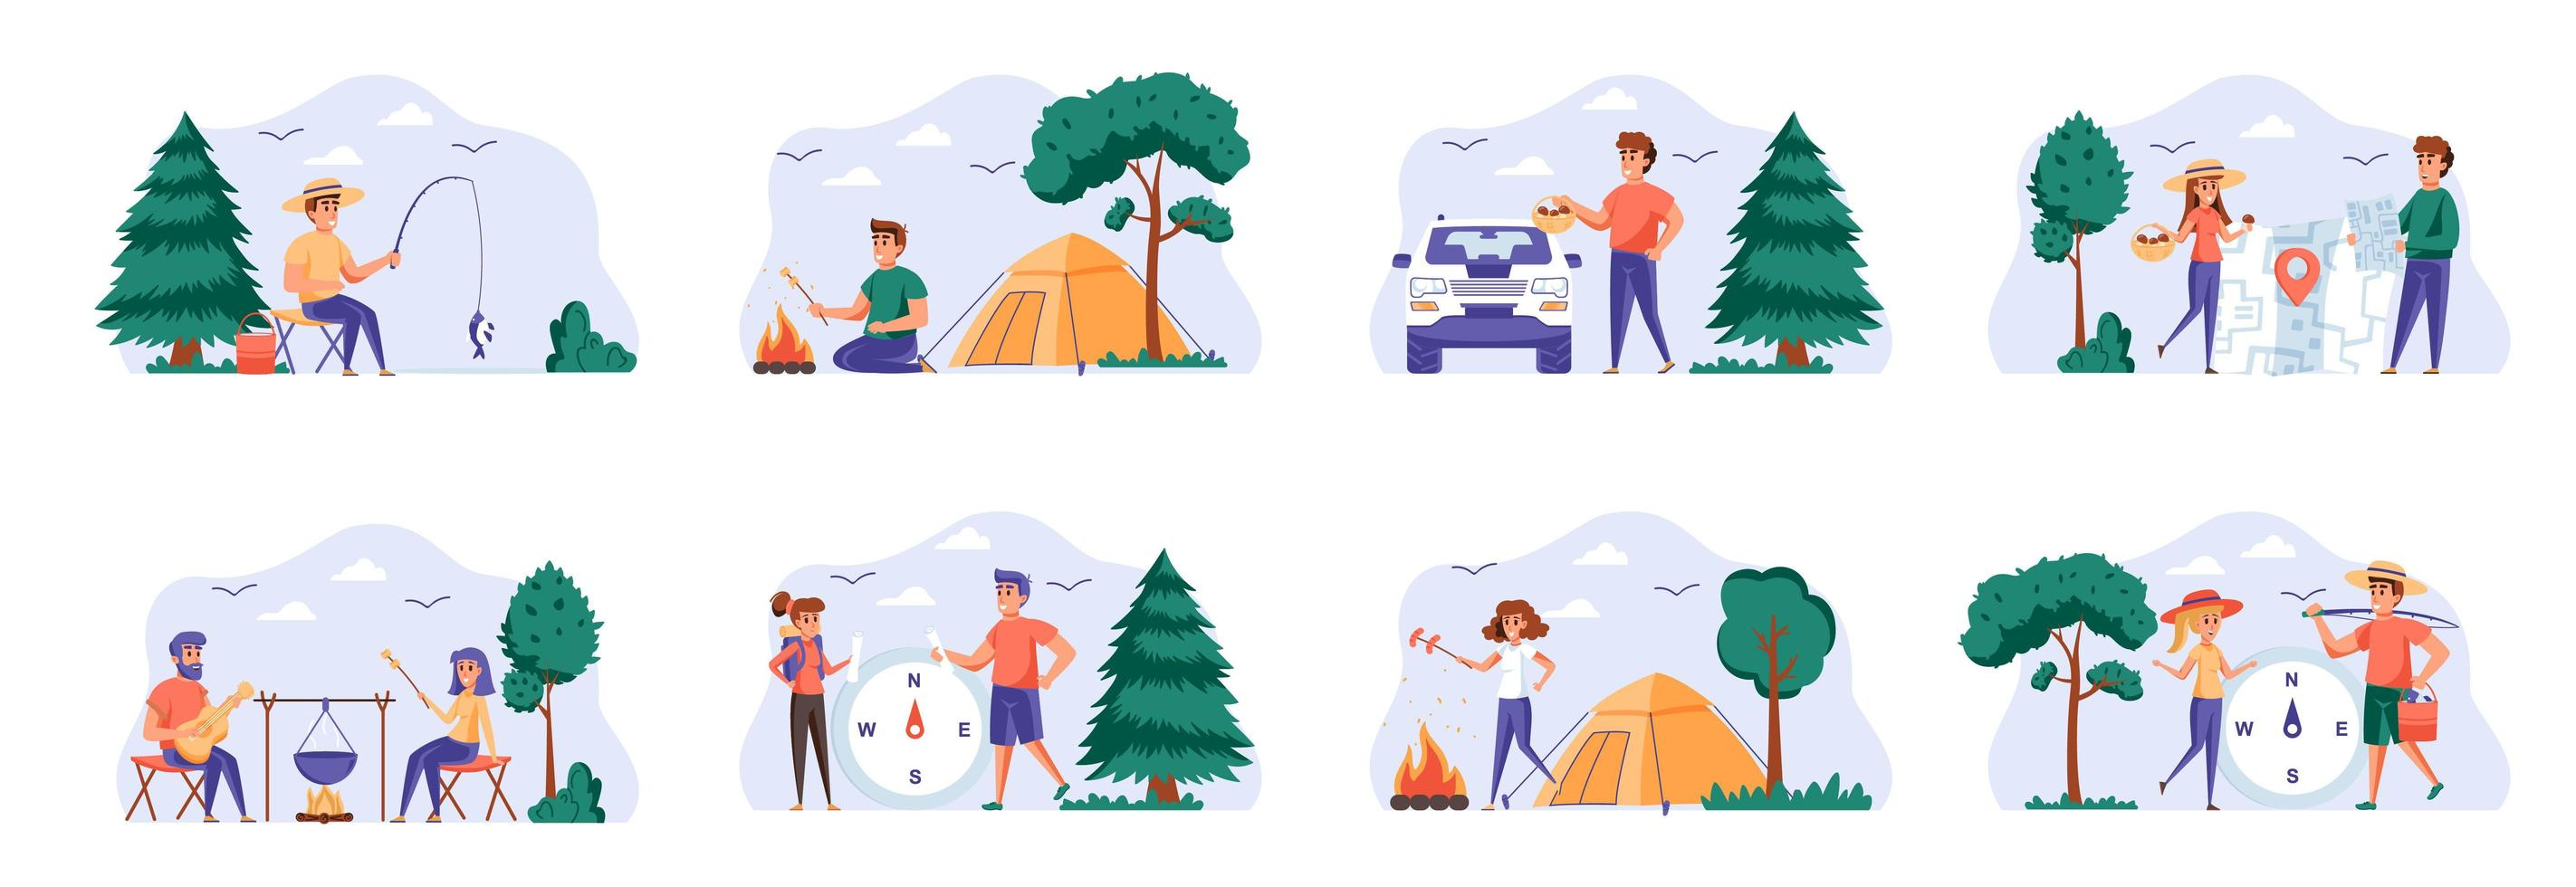 Camping scenes bundle with people characters. vector